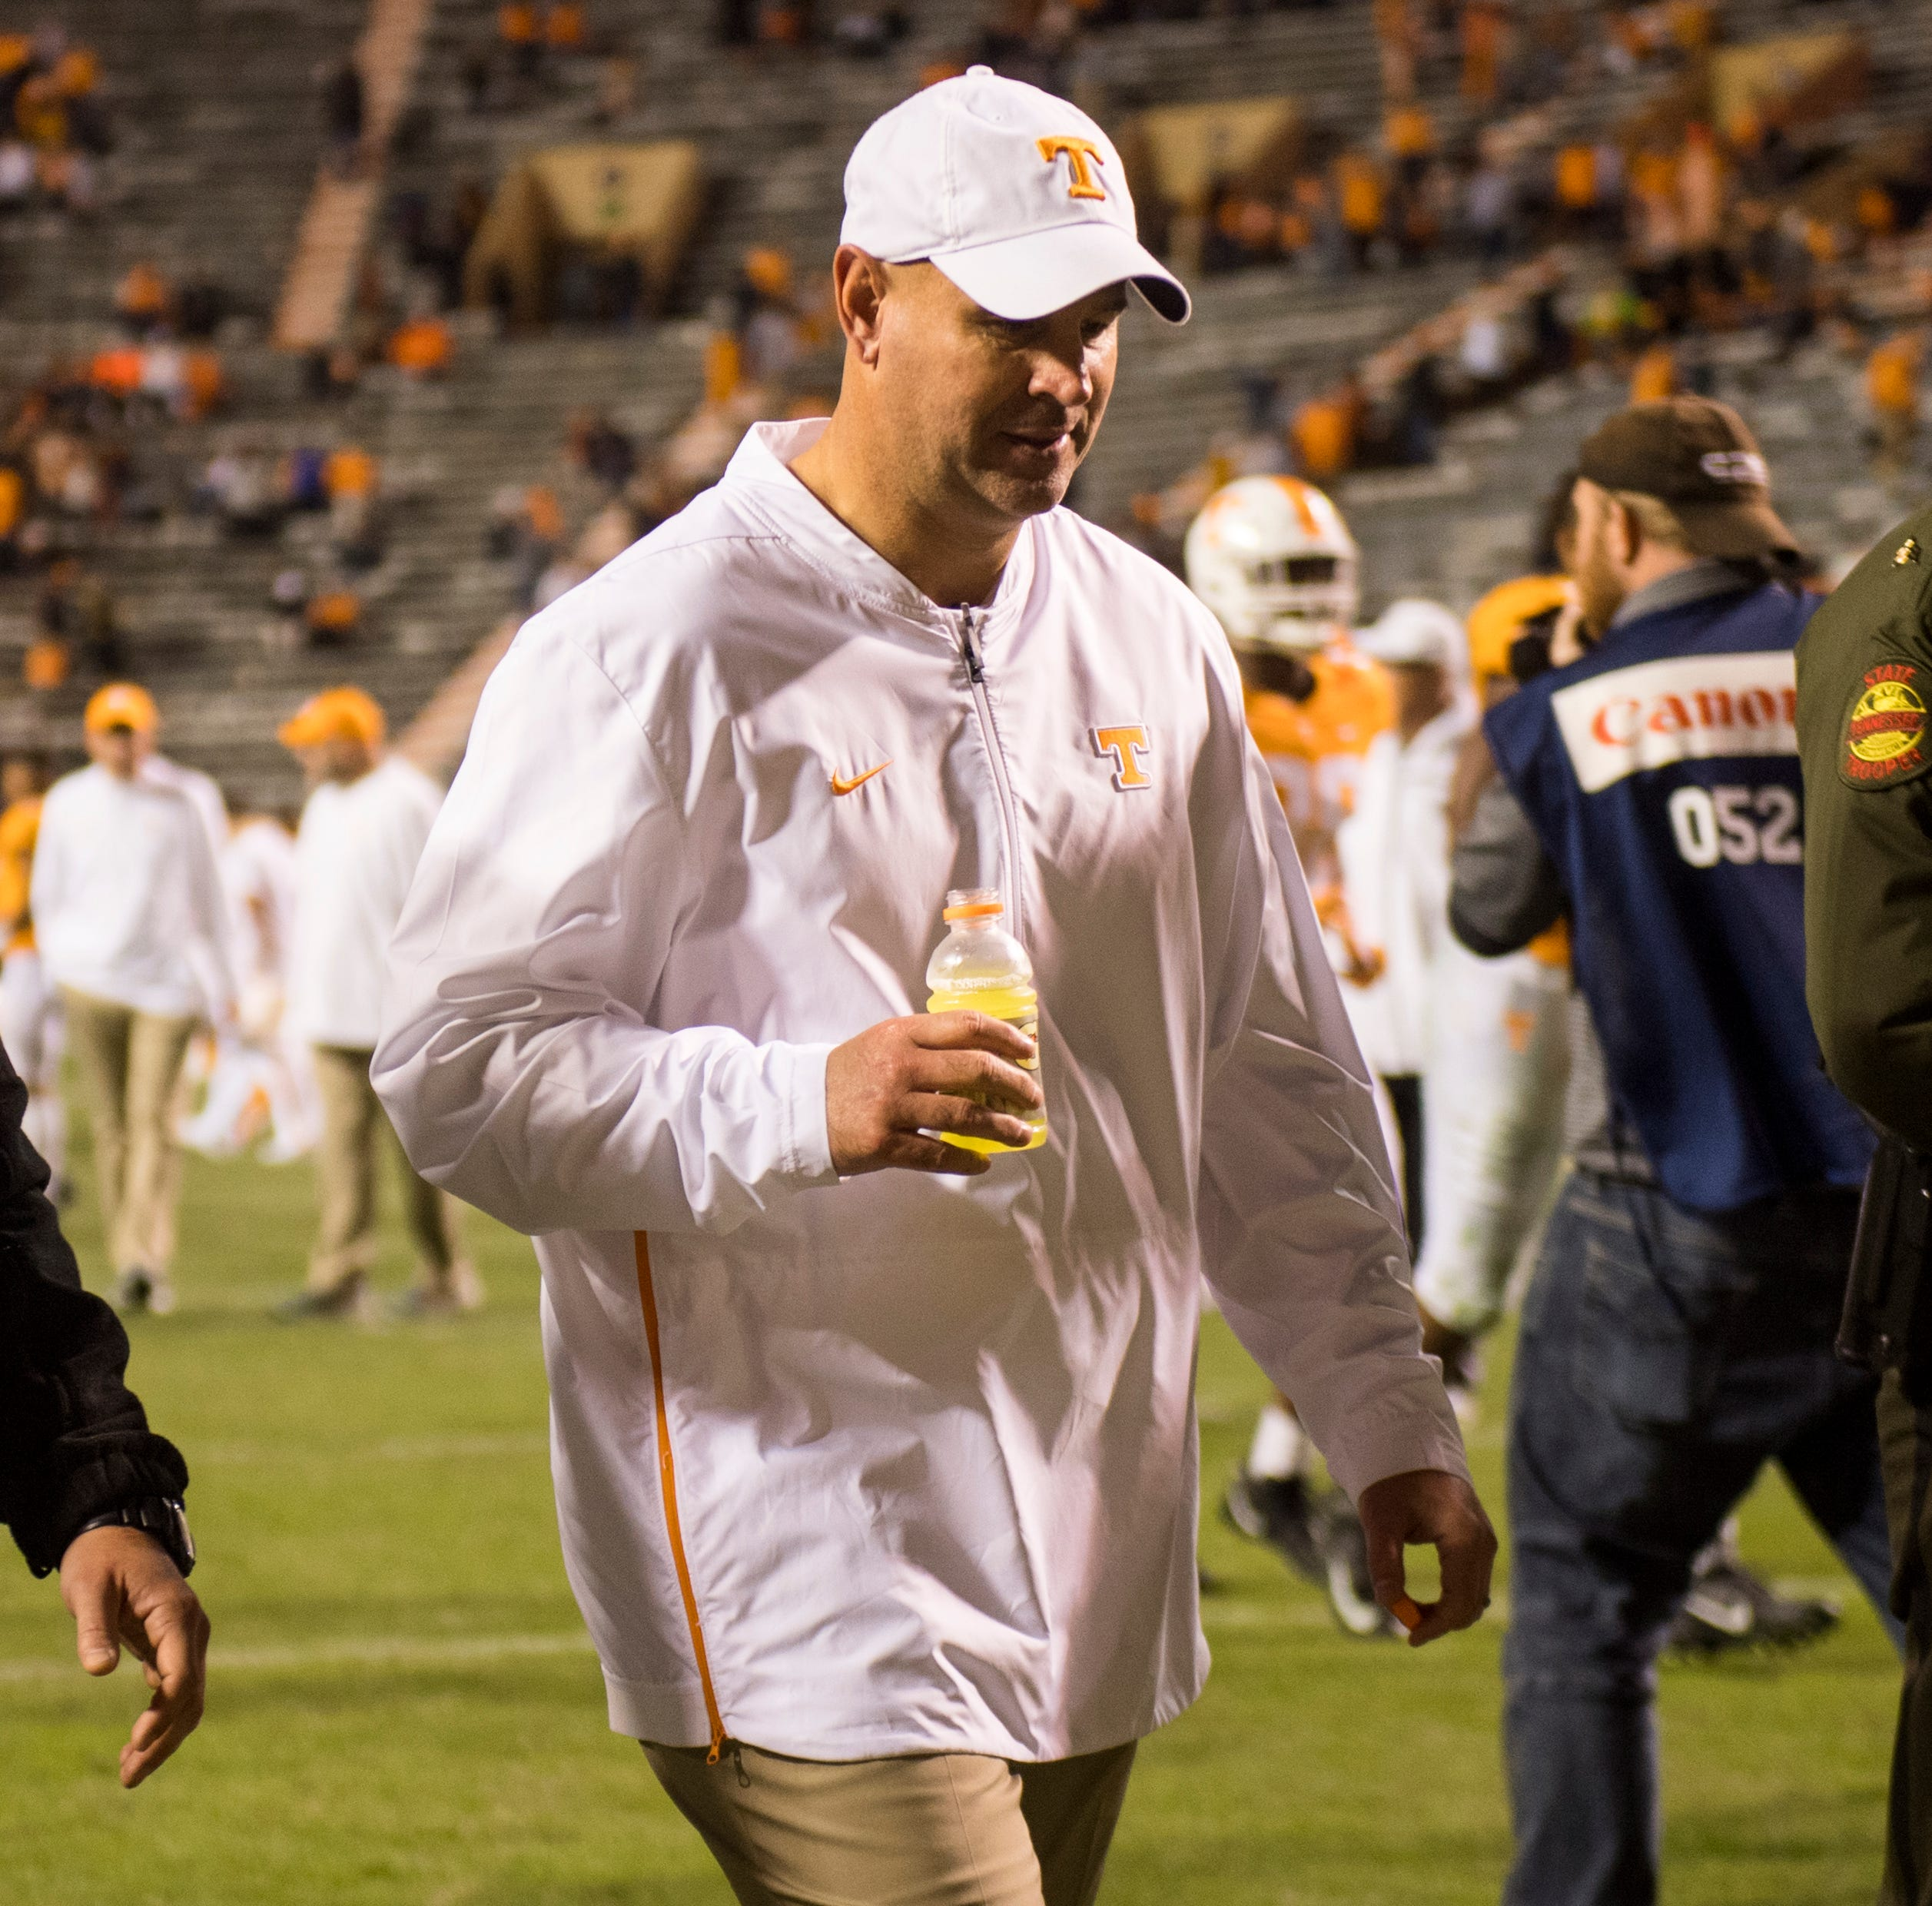 UT Vols' Jeremy Pruitt tells Knoxville QB Club: 'We share the same disappointments'